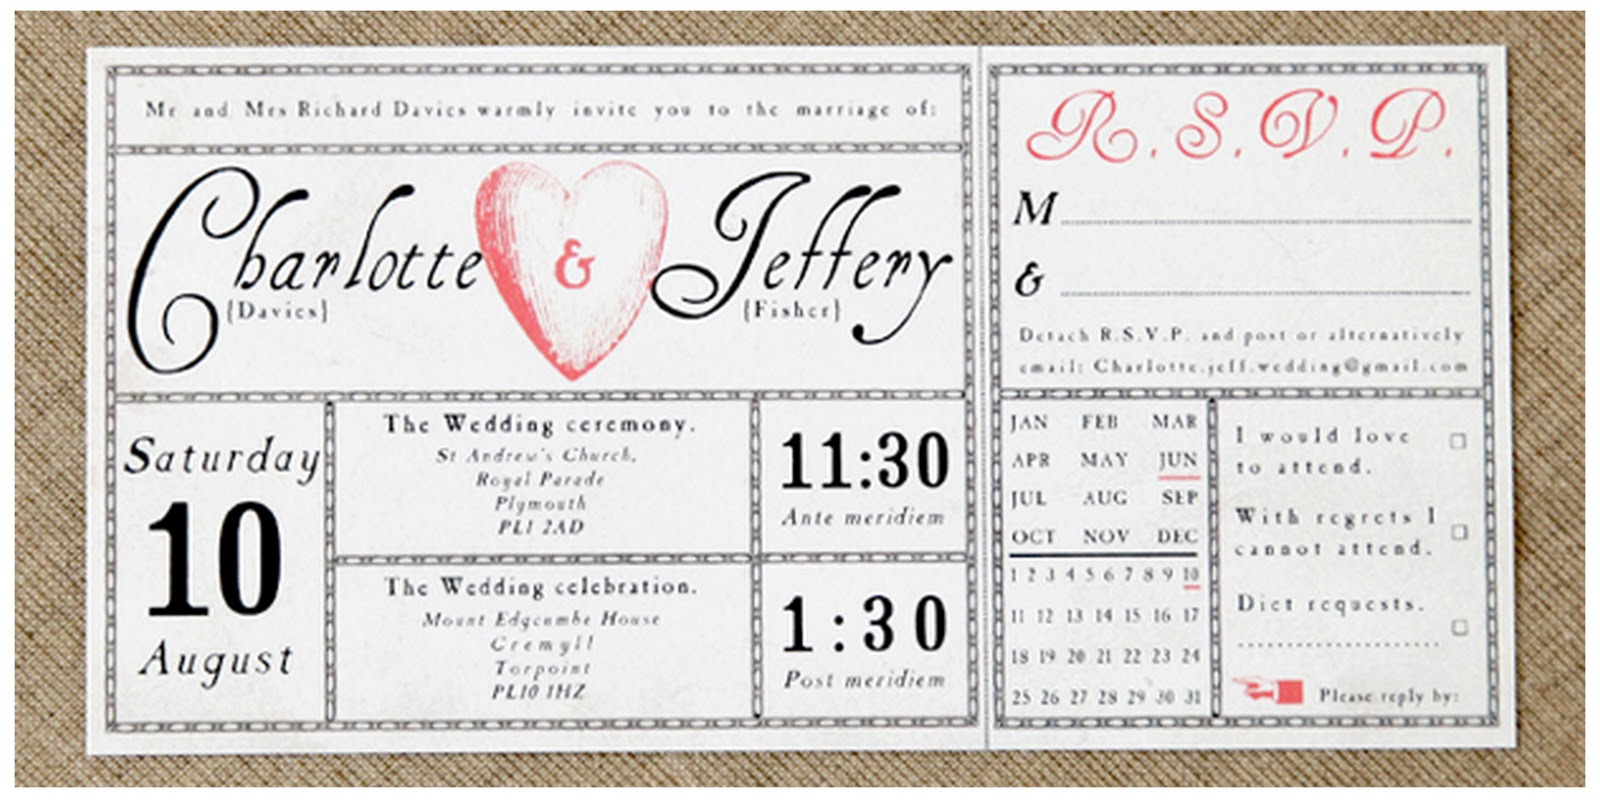 How Big Are Wedding Invitations: Before The Big Day